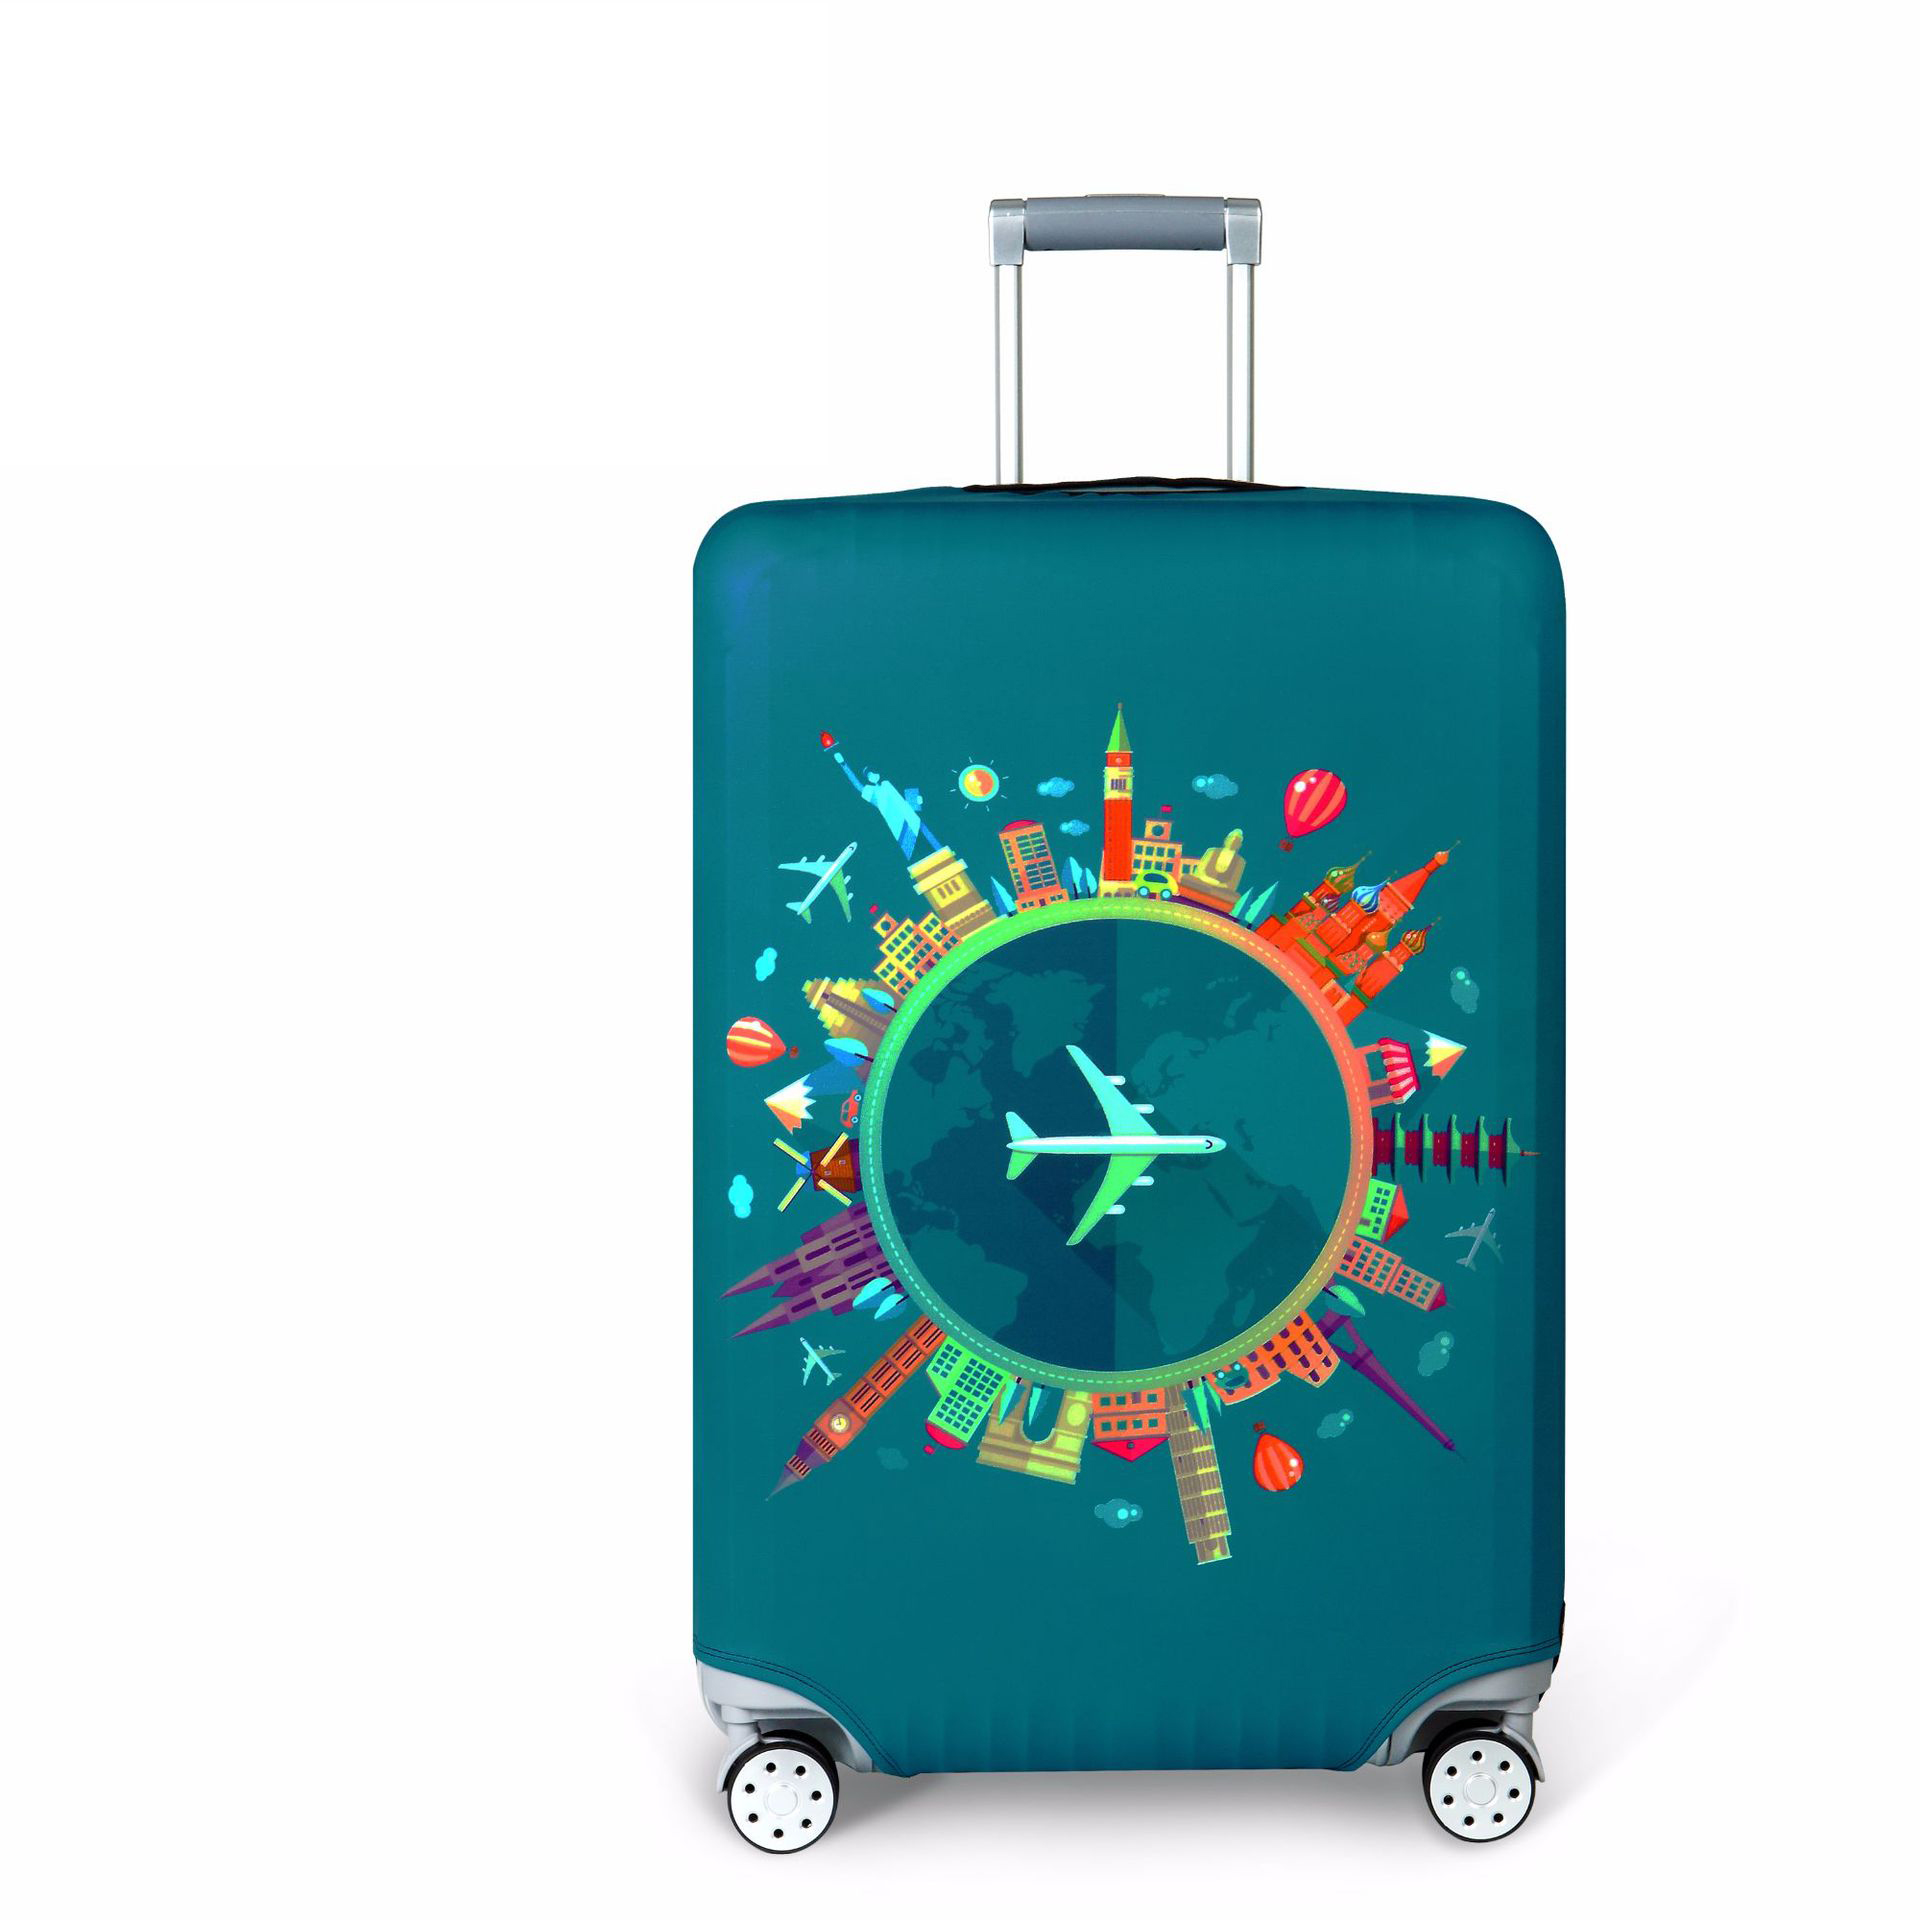 Thicker Blue City Luggage Cover Travel Suitcase Protective Cover for Trunk Case Apply to 19''-32'' Suitcase Cover 273